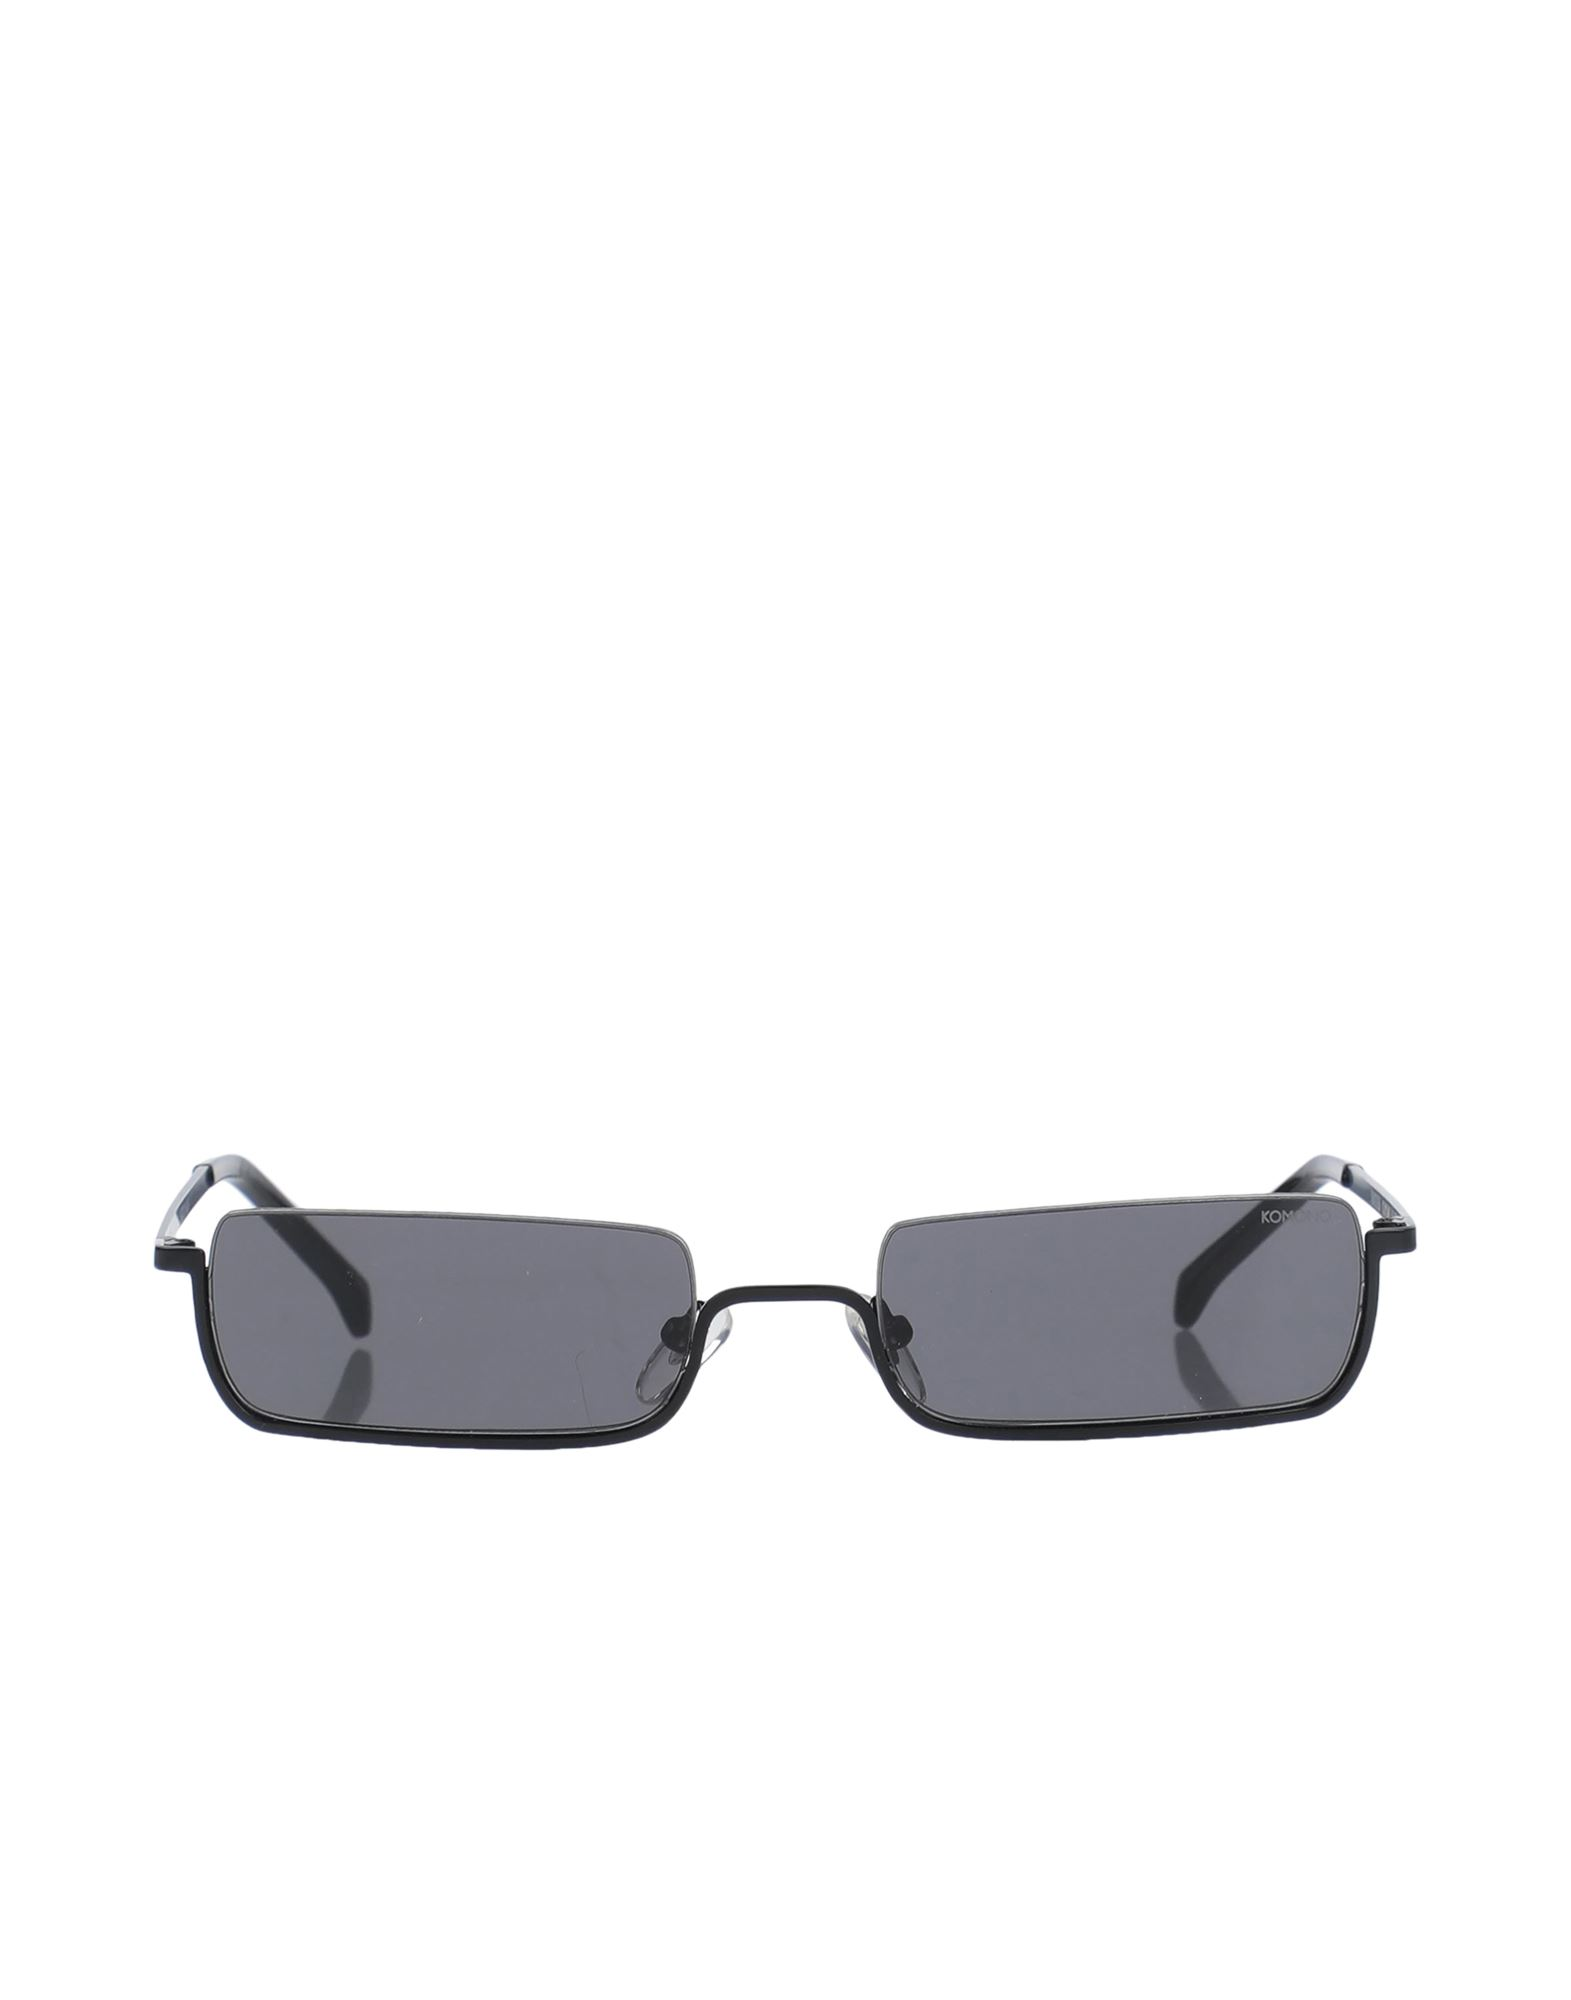 KOMONO Sunglasses - Item 46740888